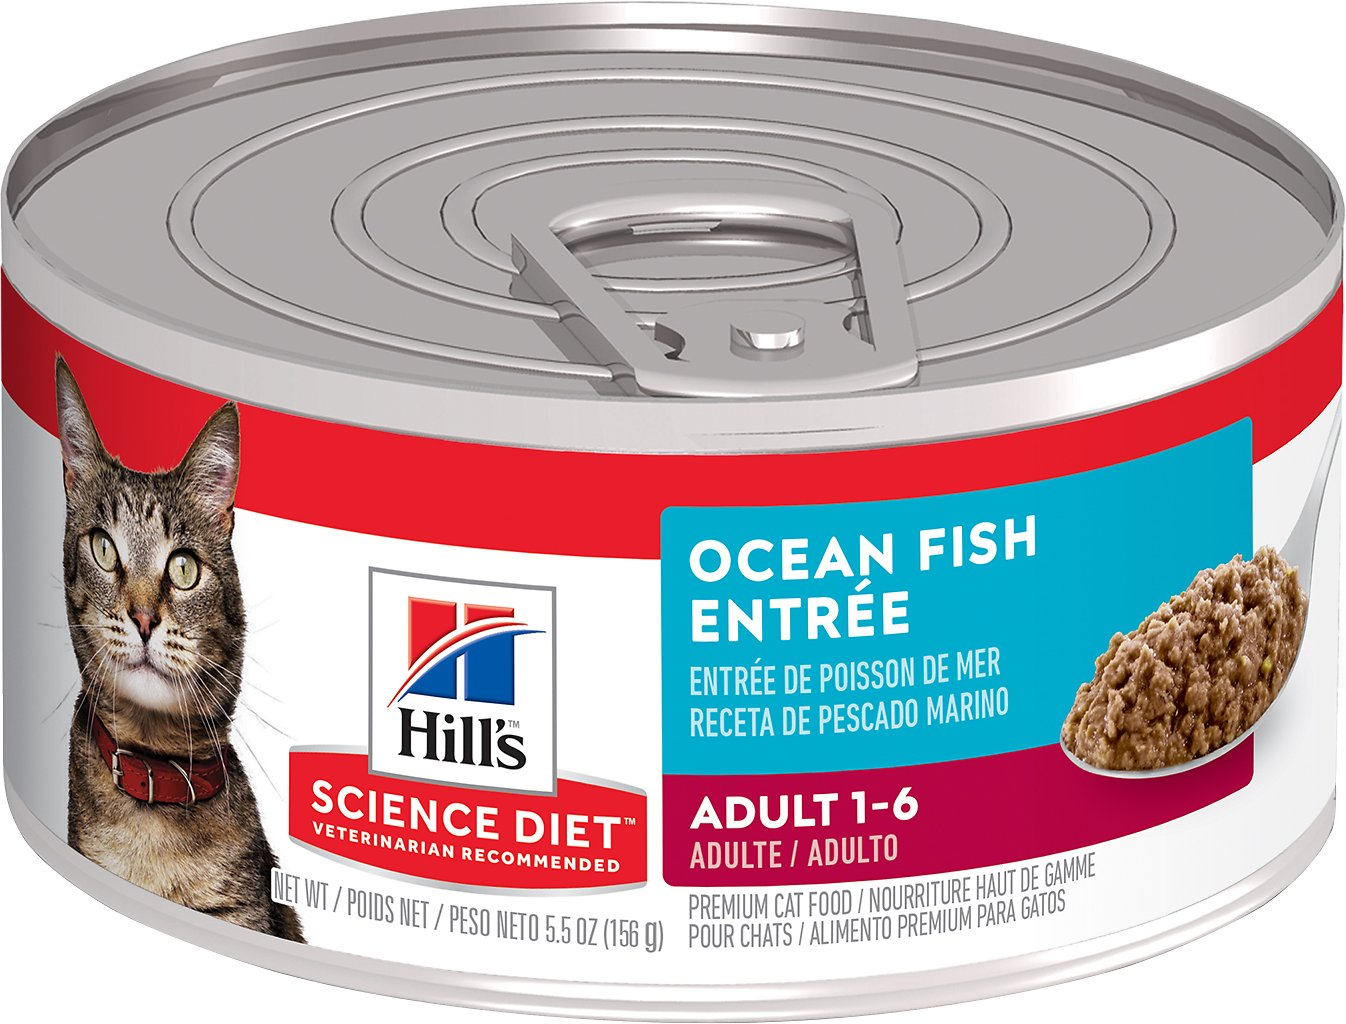 Hill's Science Diet Adult Ocean Fish Entree Canned Cat Food, 5.5-oz